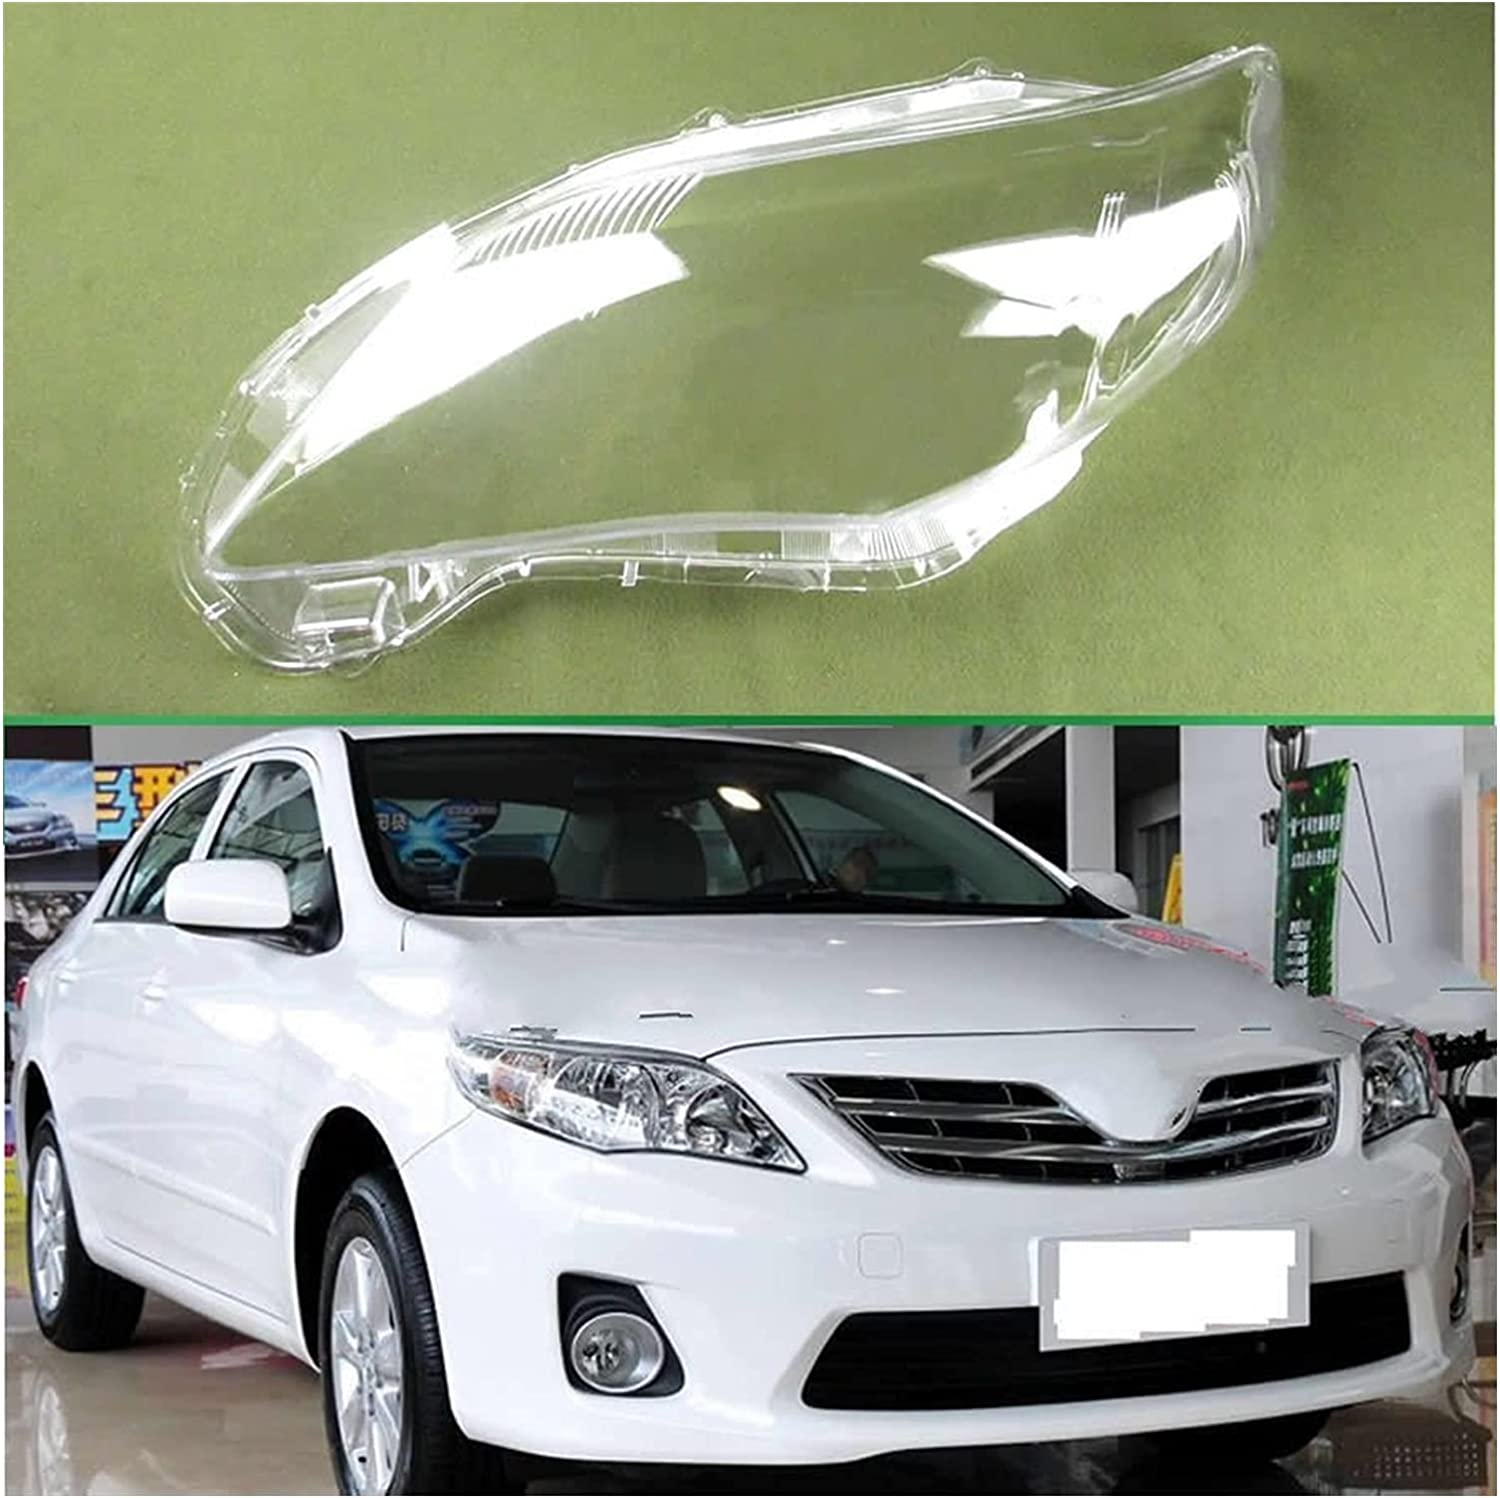 JHDS Transparent Automotive Headlight Shell Ranking TOP12 Seattle Mall L Covers